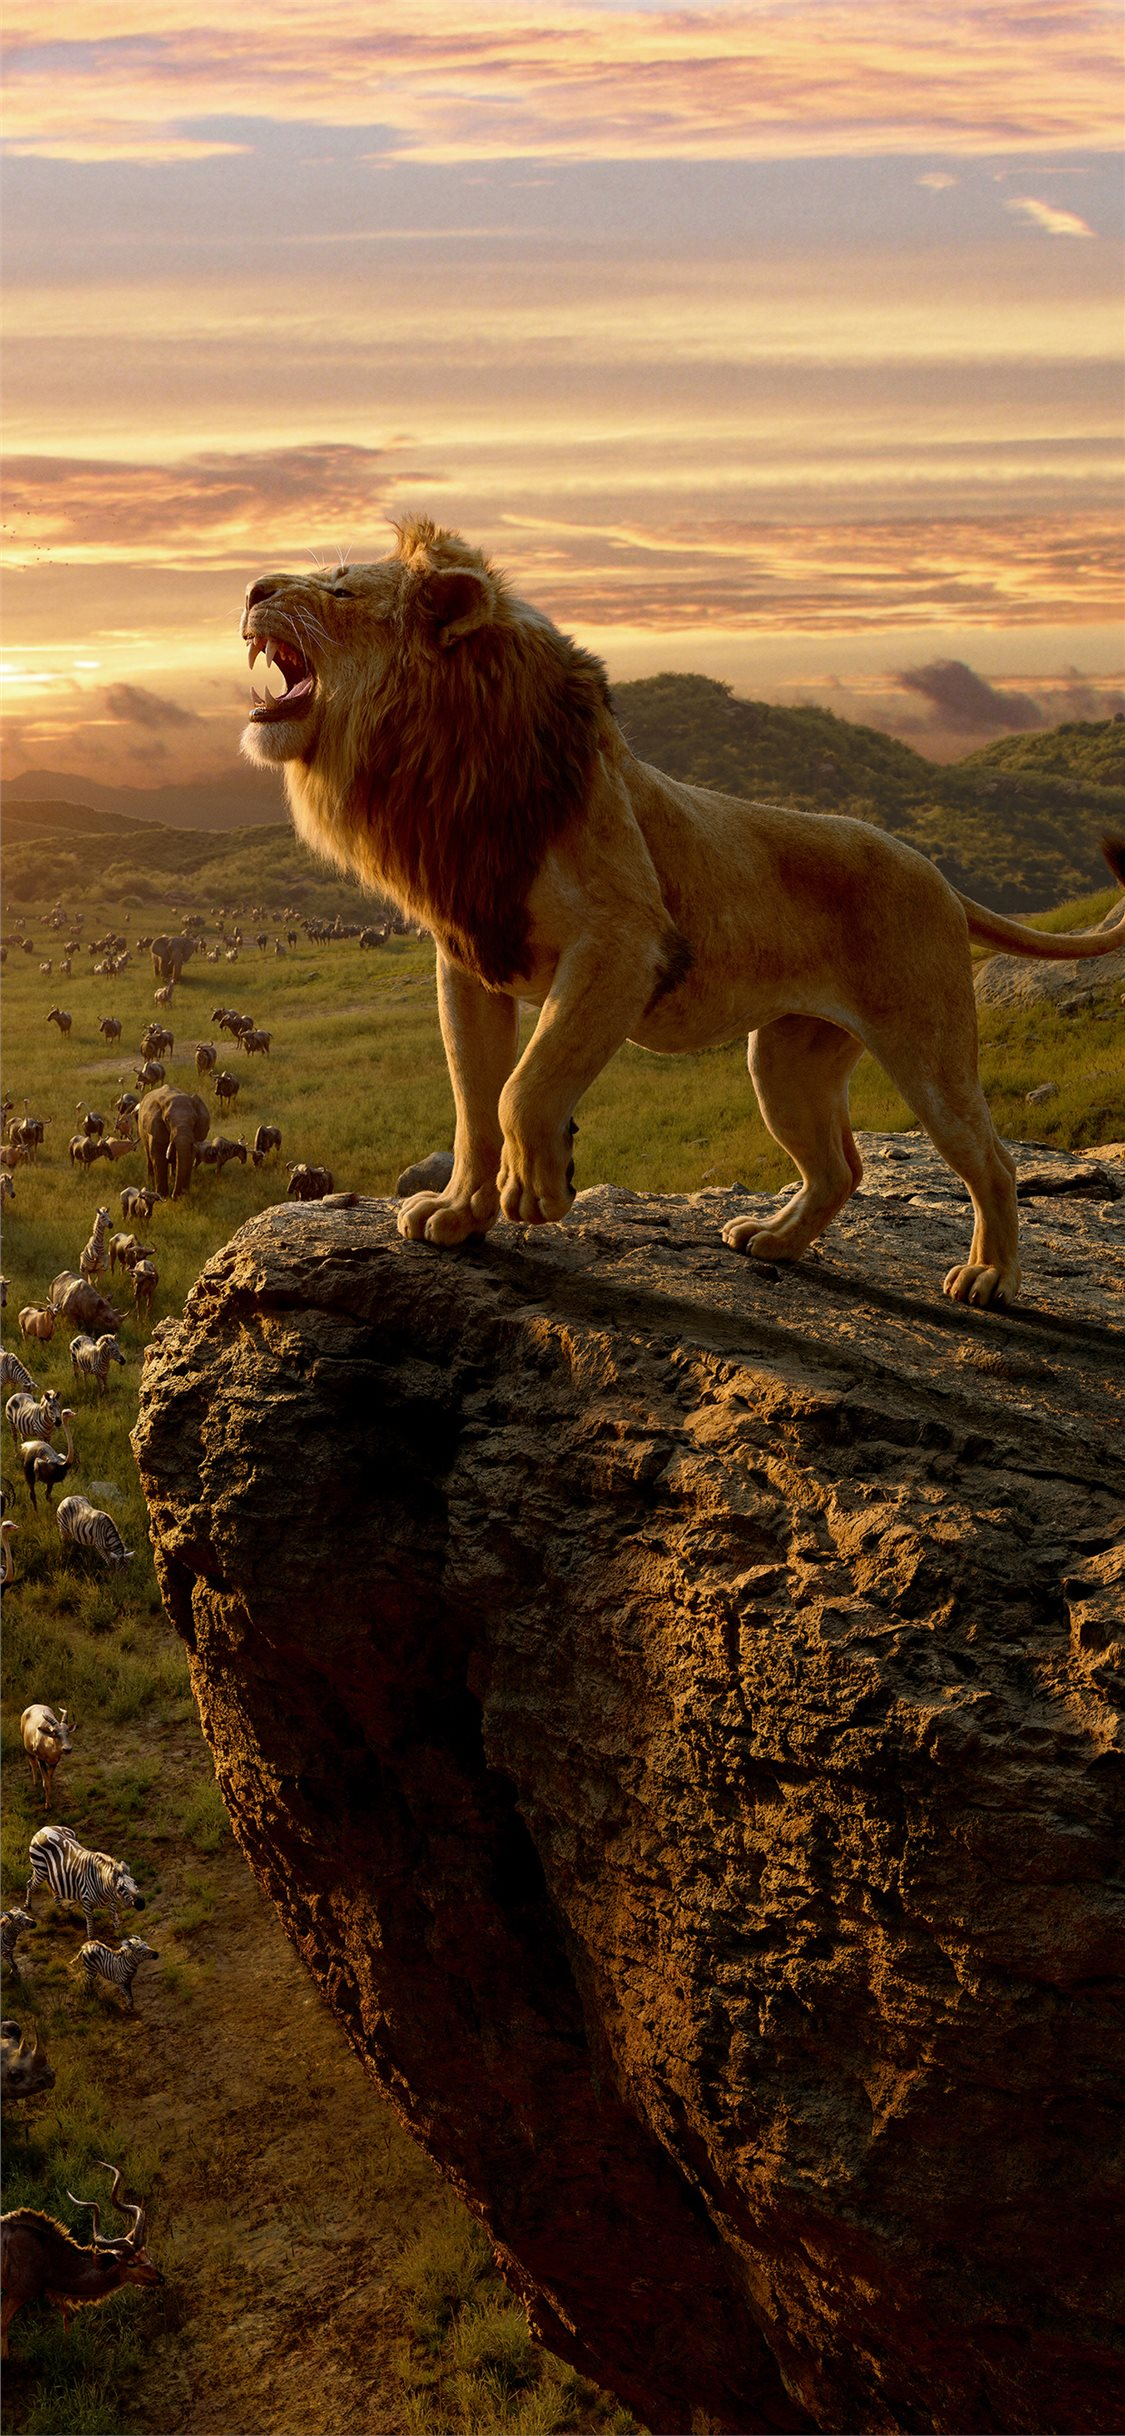 The Lion King Movie 10k Iphone Wallpapers Free Download